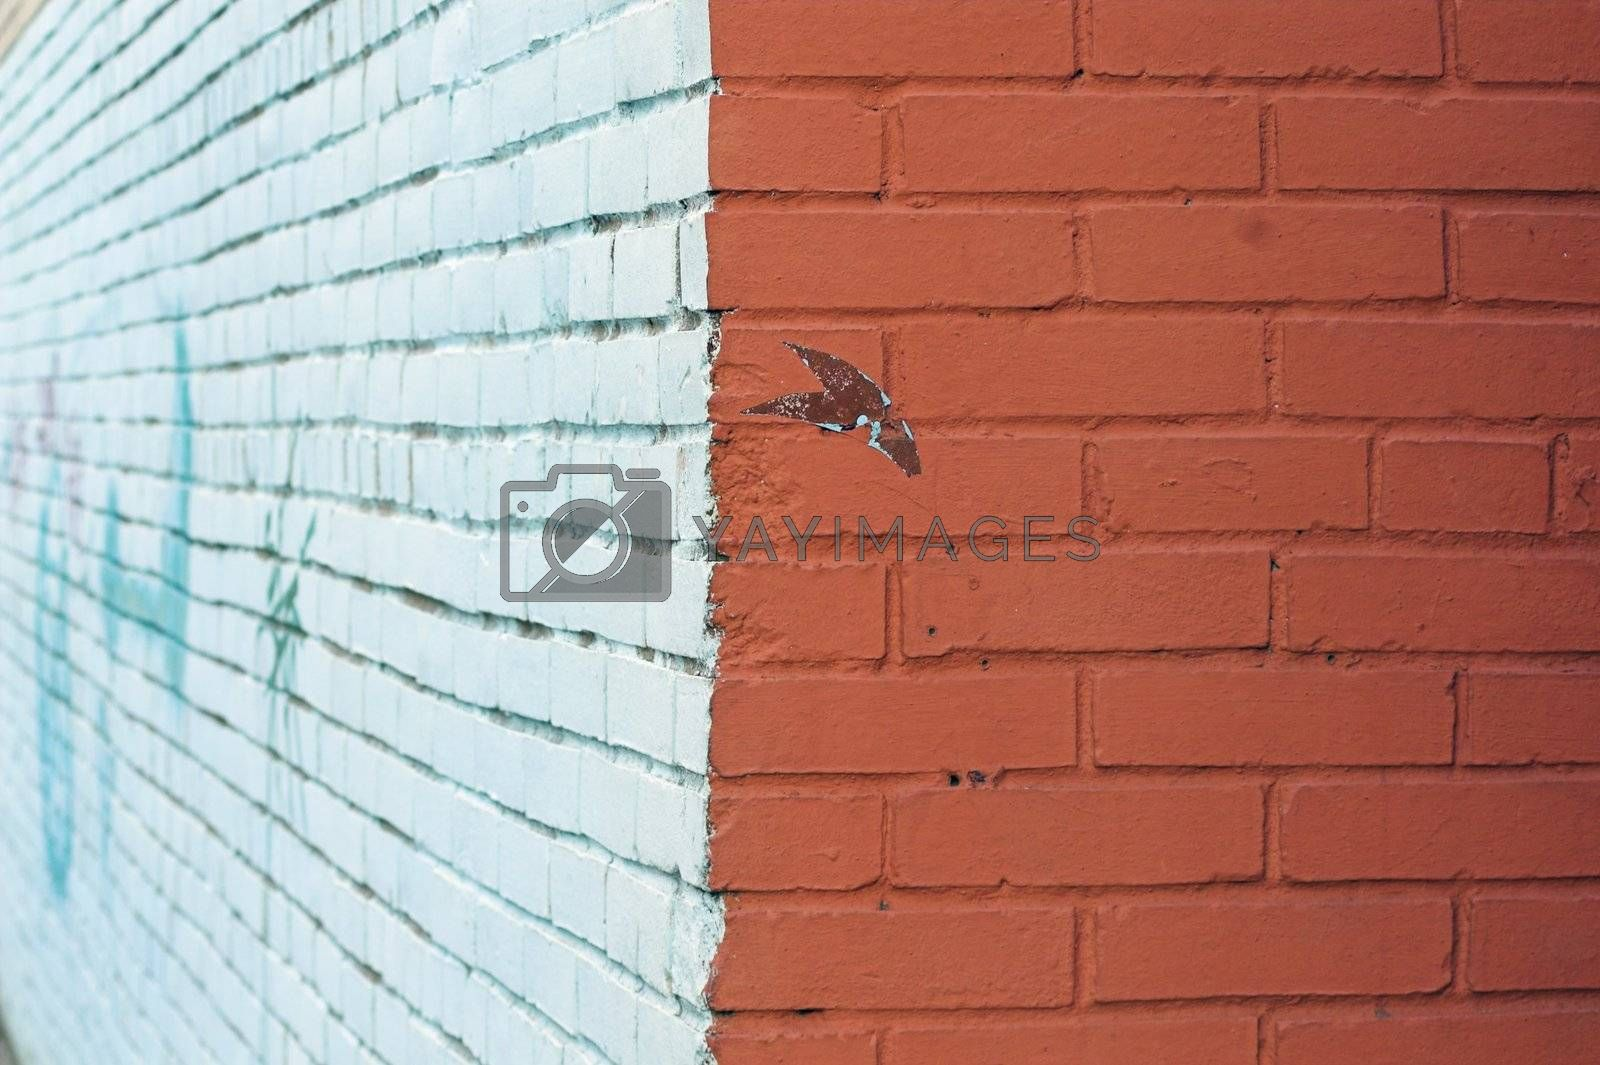 Close-up view of corner and painted wall with graffiti